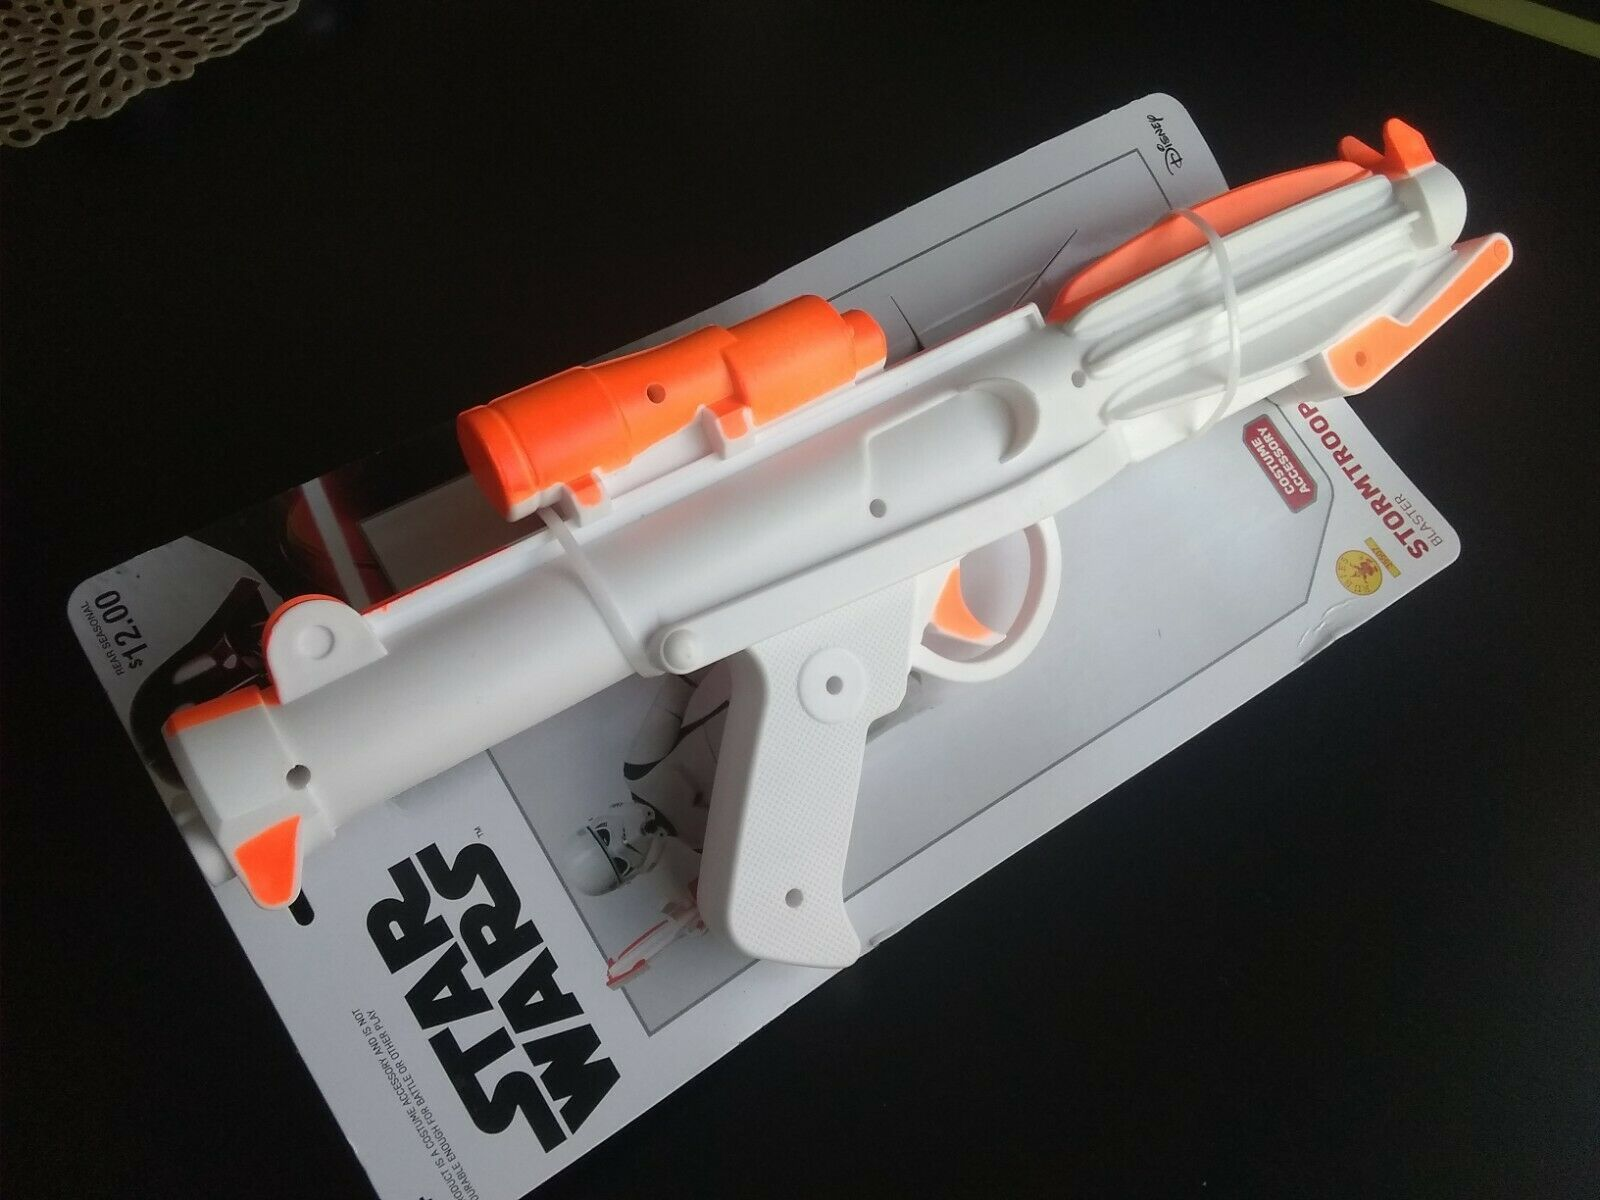 Star Wars Stormtrooper E-11 Blaster Replica Prop Rebels Licensed Star Wars Toy DIY Base Starter